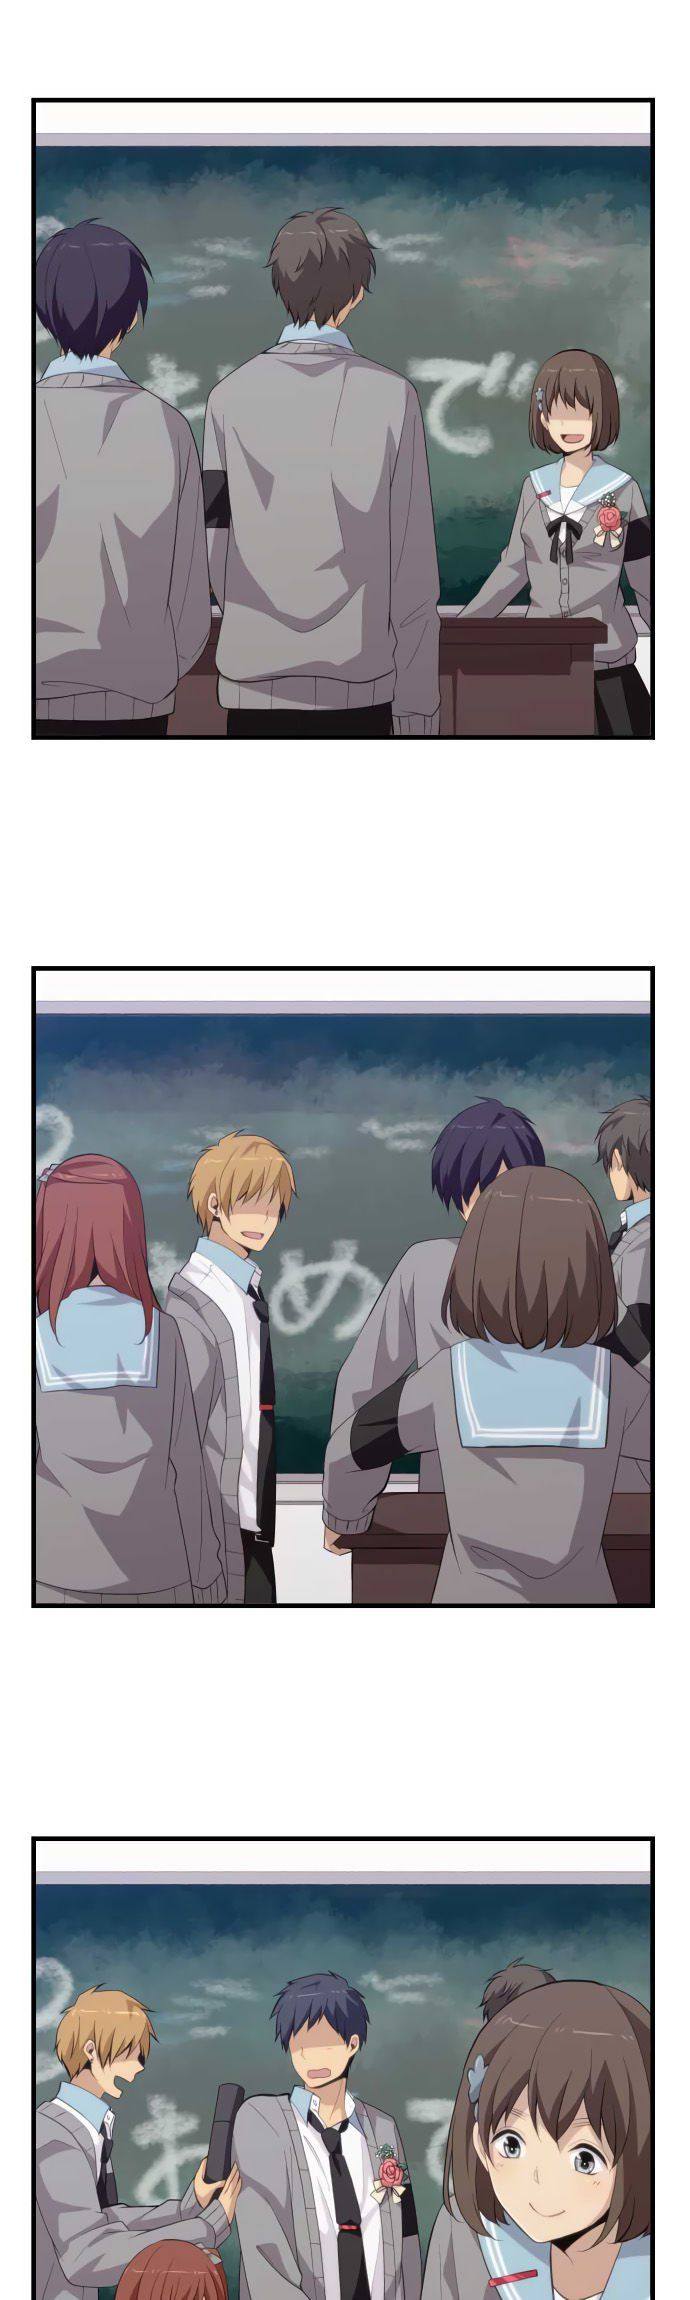 ReLIFE Chapter 212.1  Online Free Manga Read Image 6